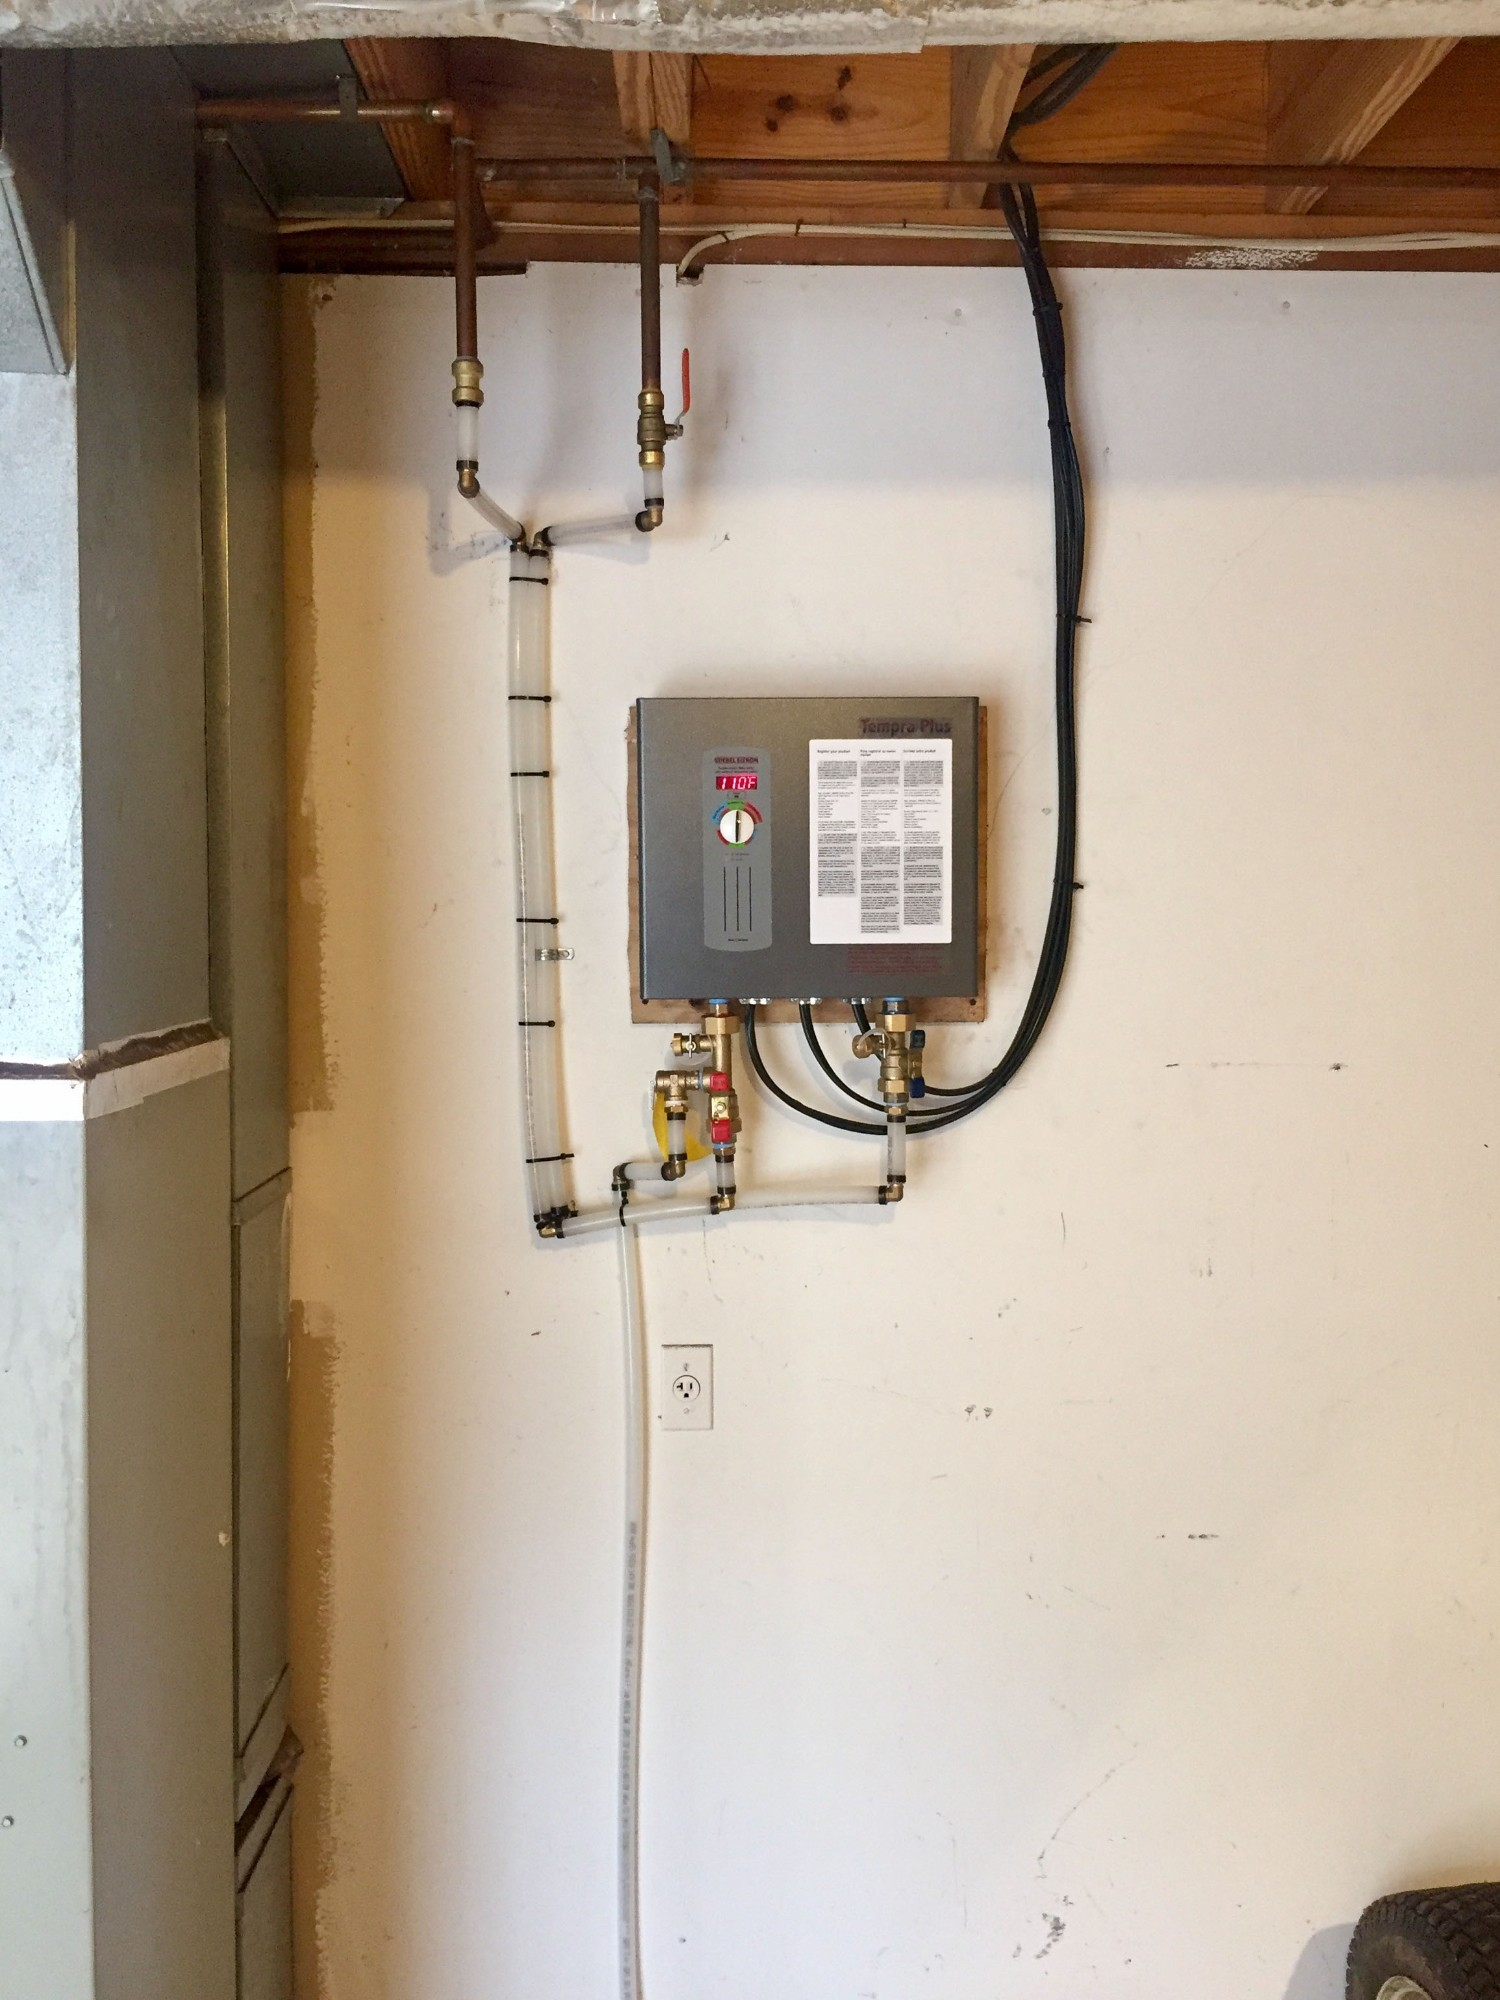 Douglas Cooling and Heating is installing a residential electric tankless water heater